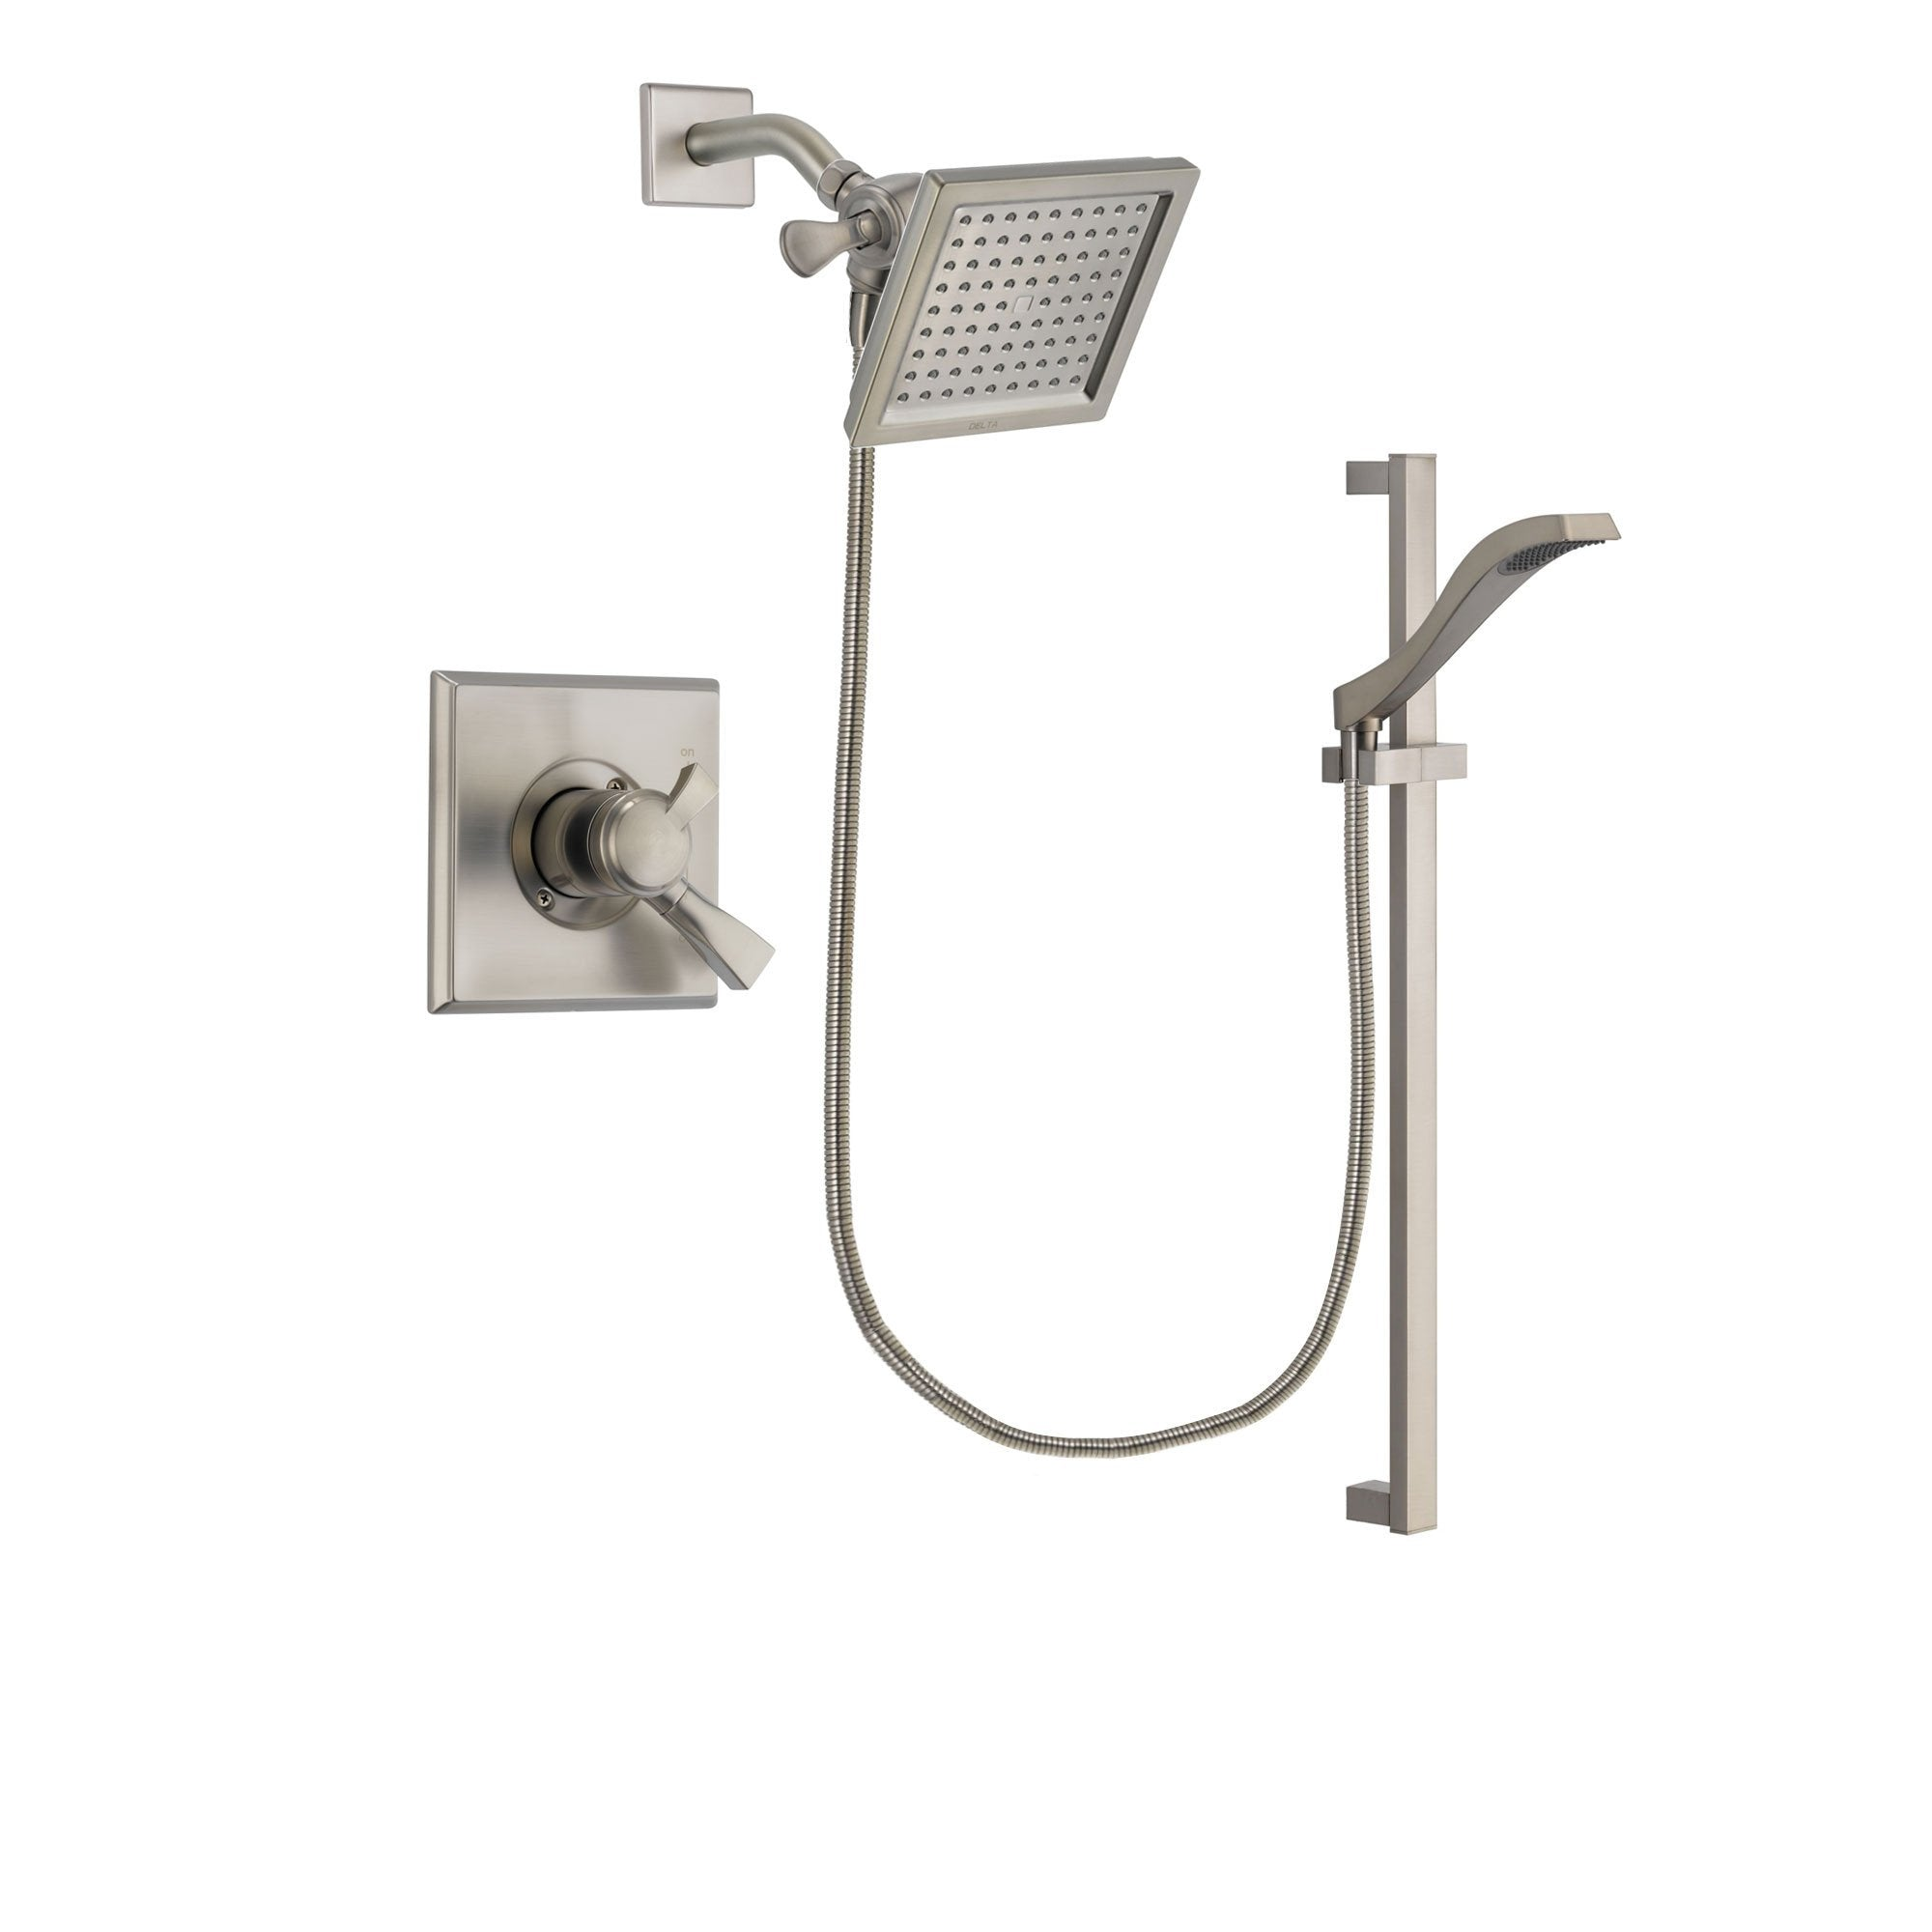 Delta Dryden Stainless Steel Finish Shower Faucet System w/ Hand Spray DSP2250V